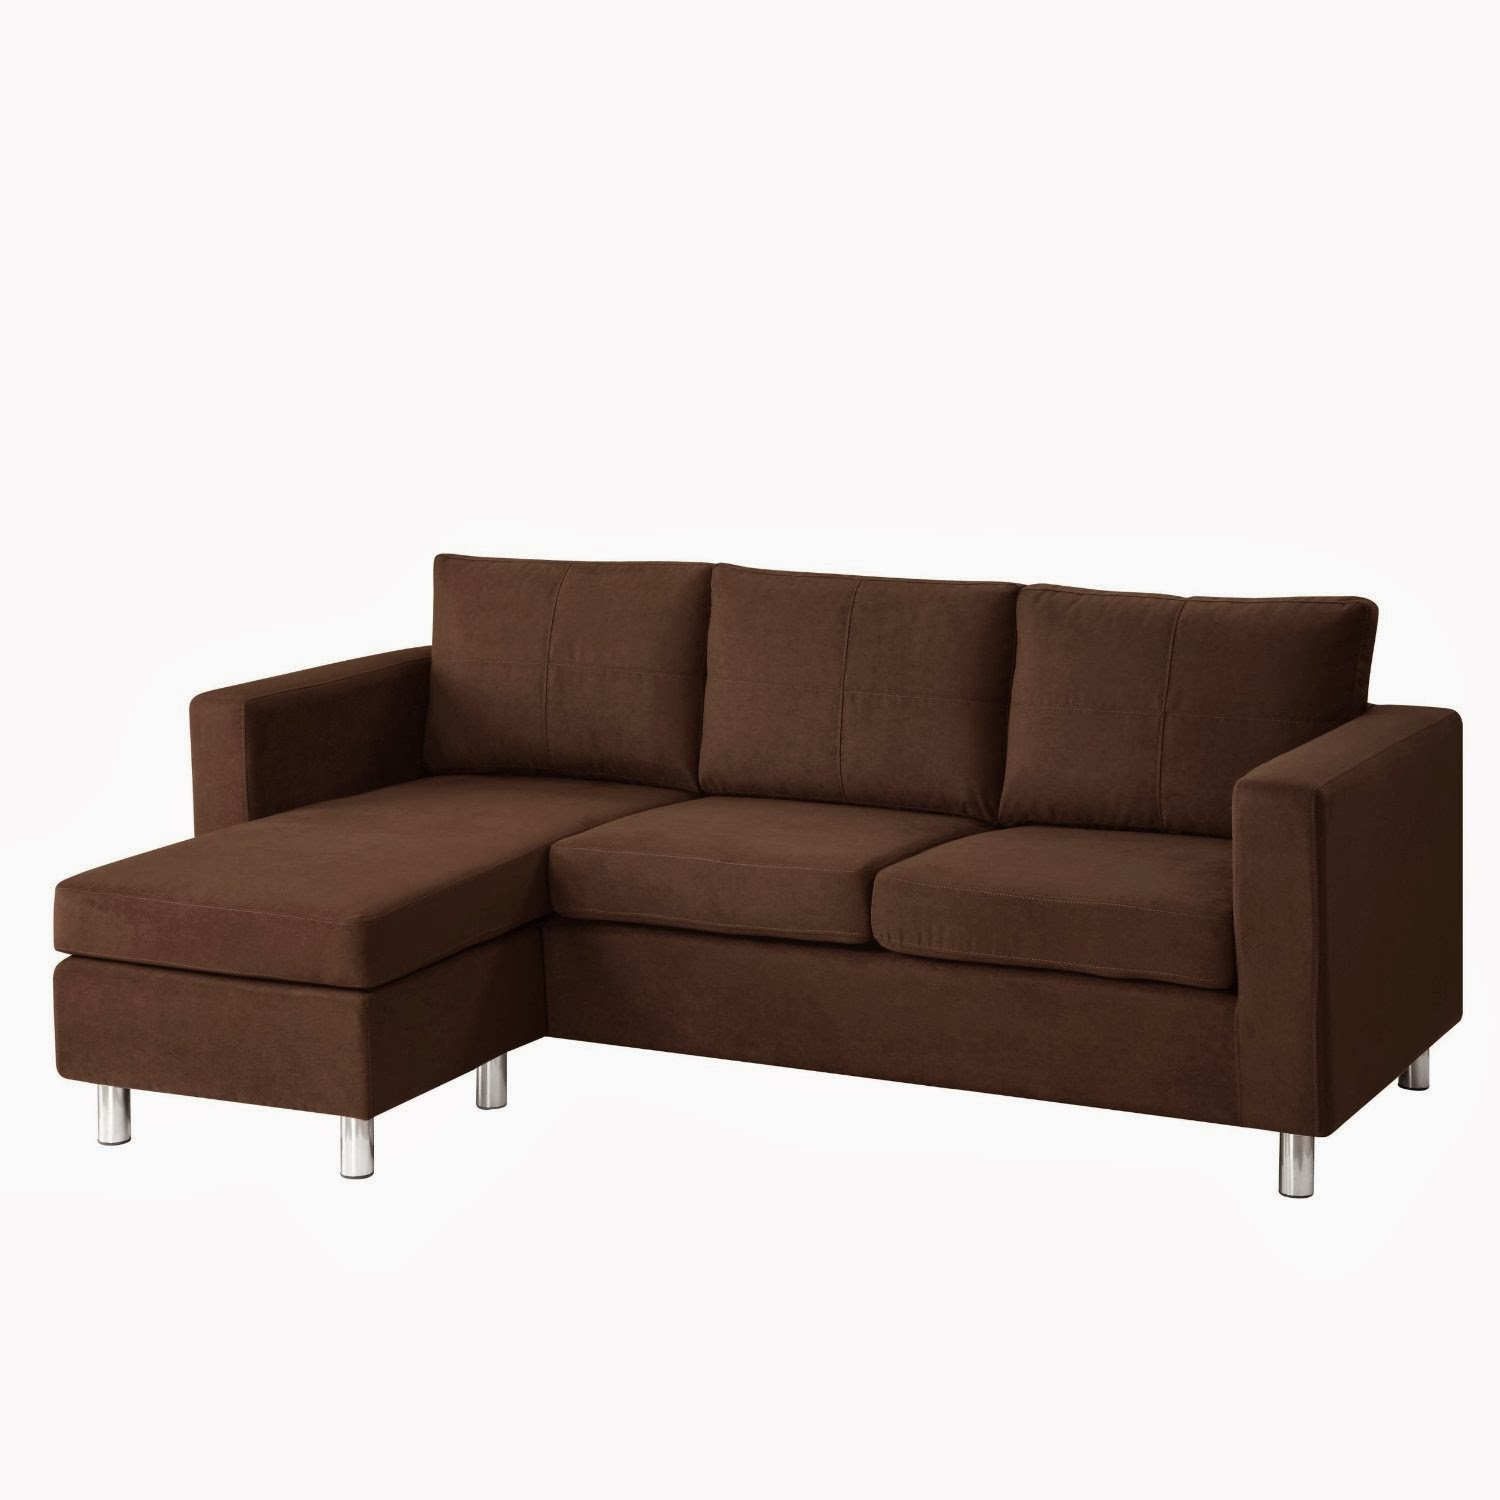 Small sectional sofas reviews small sectional sofa with for Small sectional sofas with chaise lounge